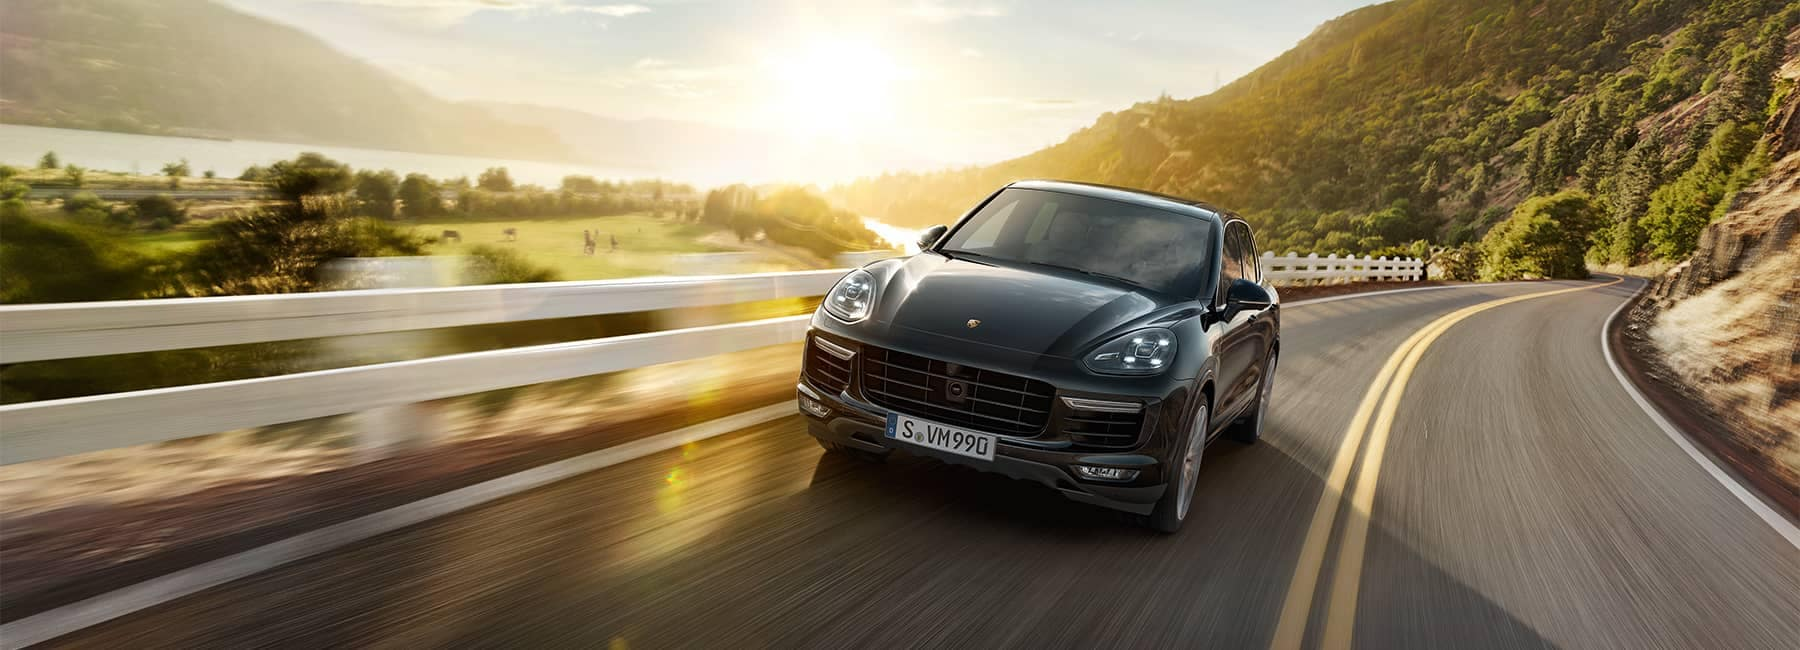 2015-Cayenne-Turbo-S-1